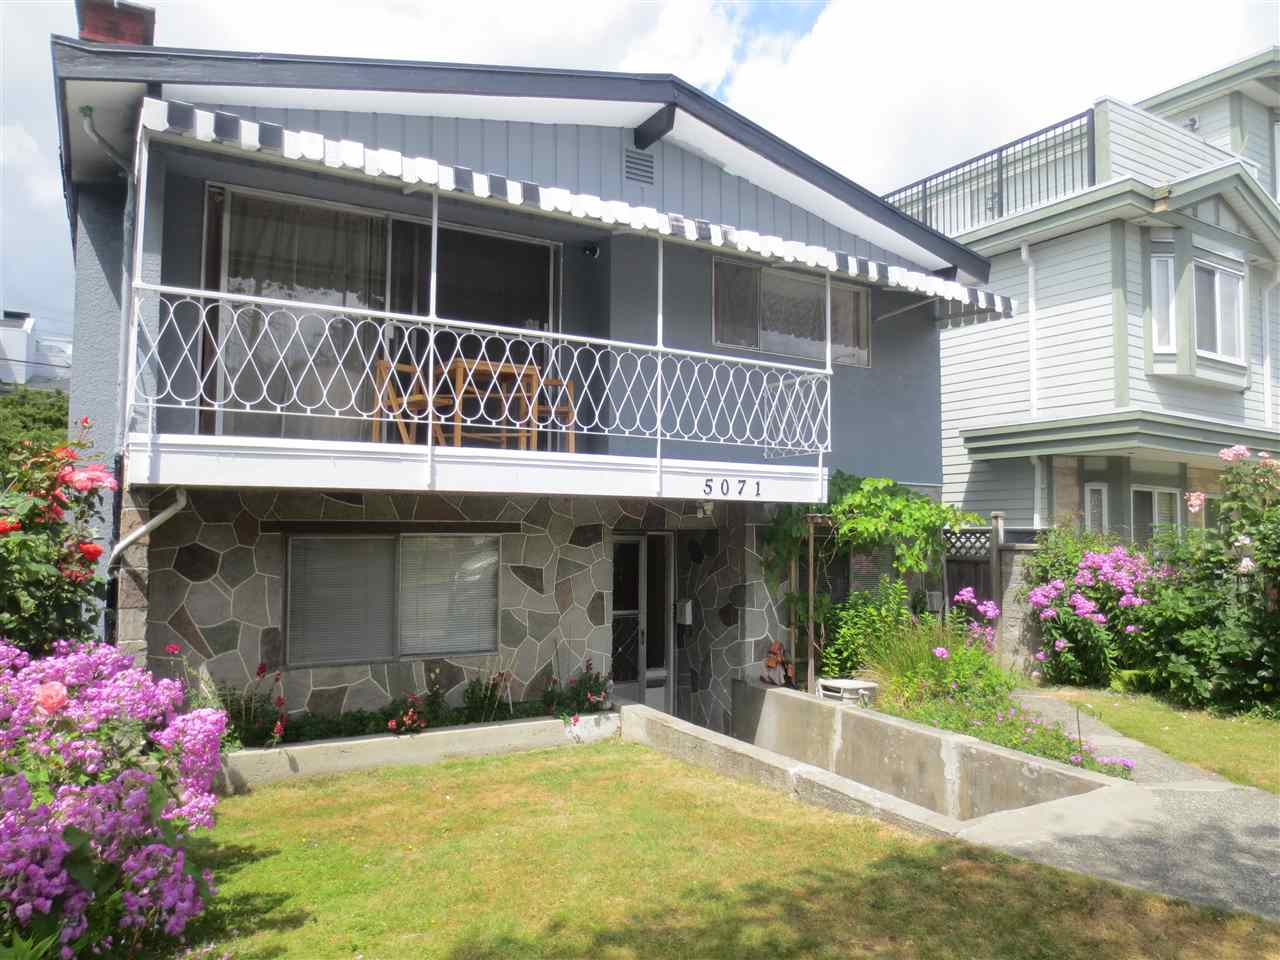 Main Photo: 5071 KILLARNEY Street in Vancouver: Collingwood VE House for sale (Vancouver East)  : MLS® # R2191461